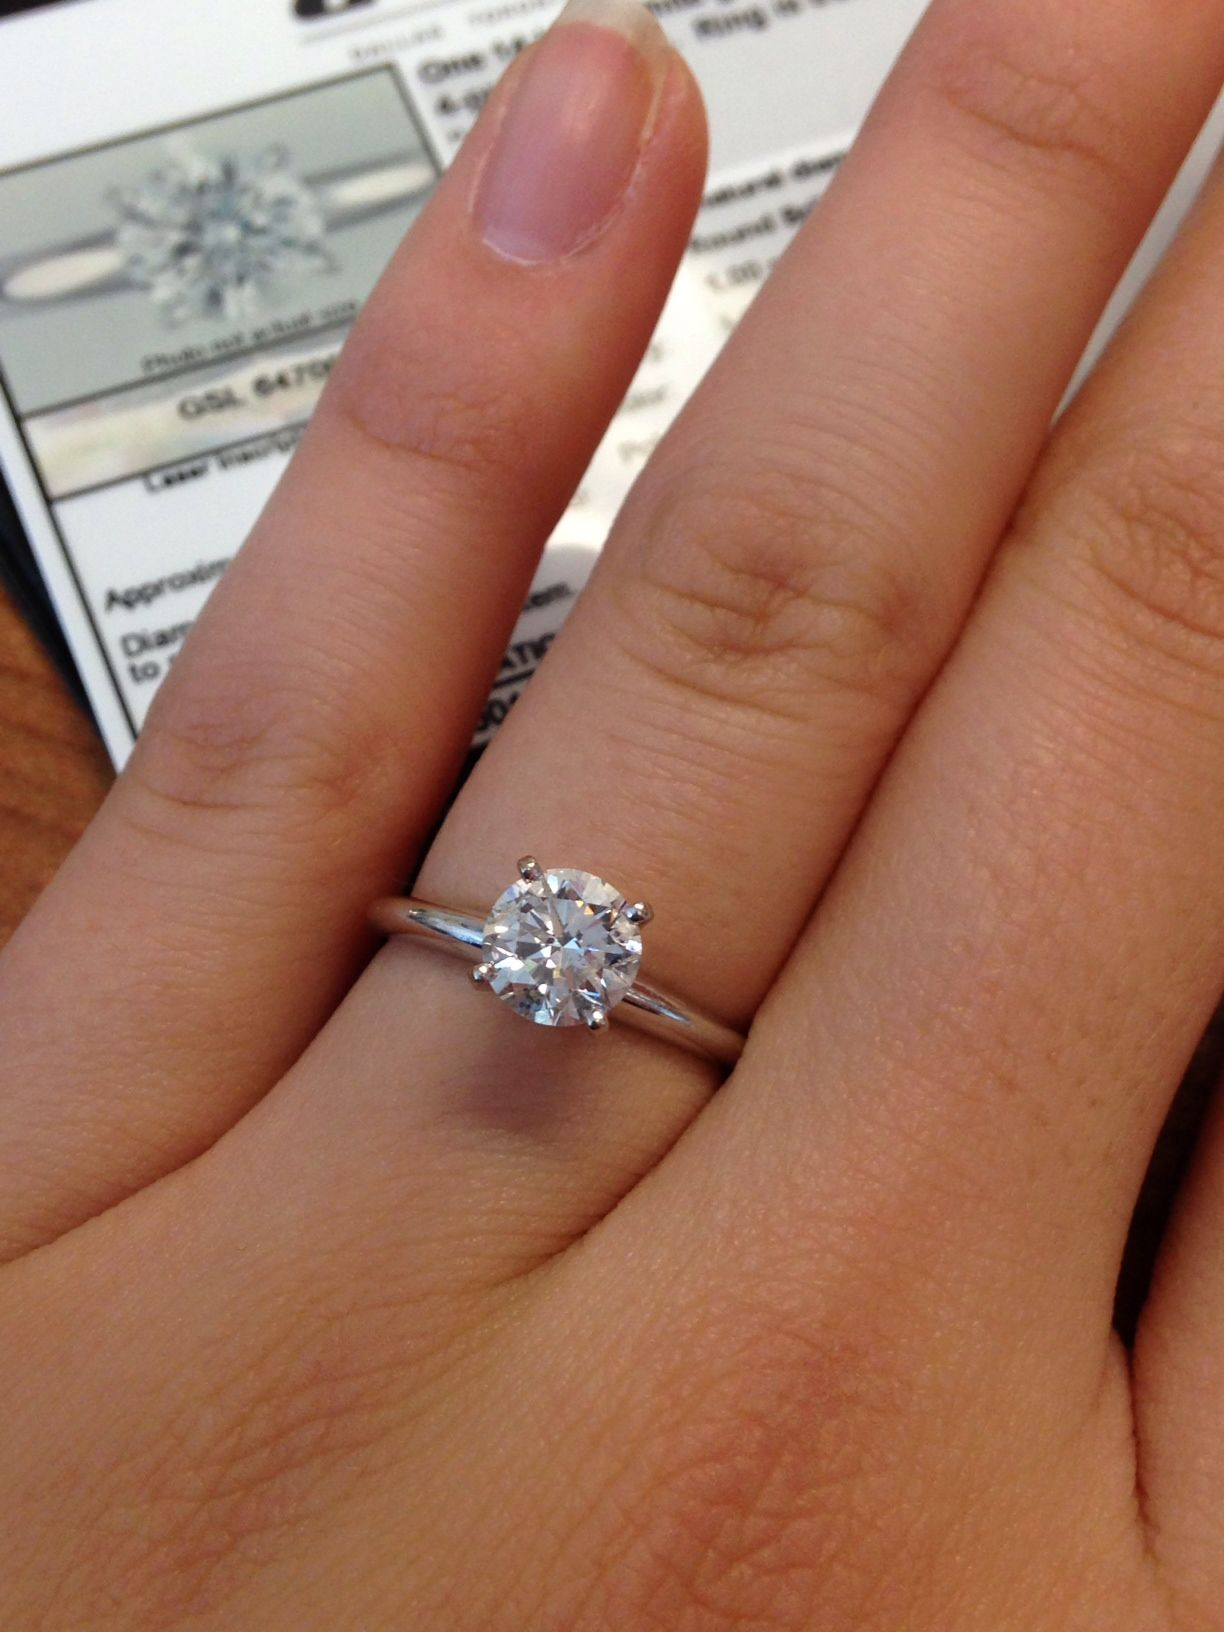 1 Carat Round Diamond #TiffanyStyle Engagement Ring from ...